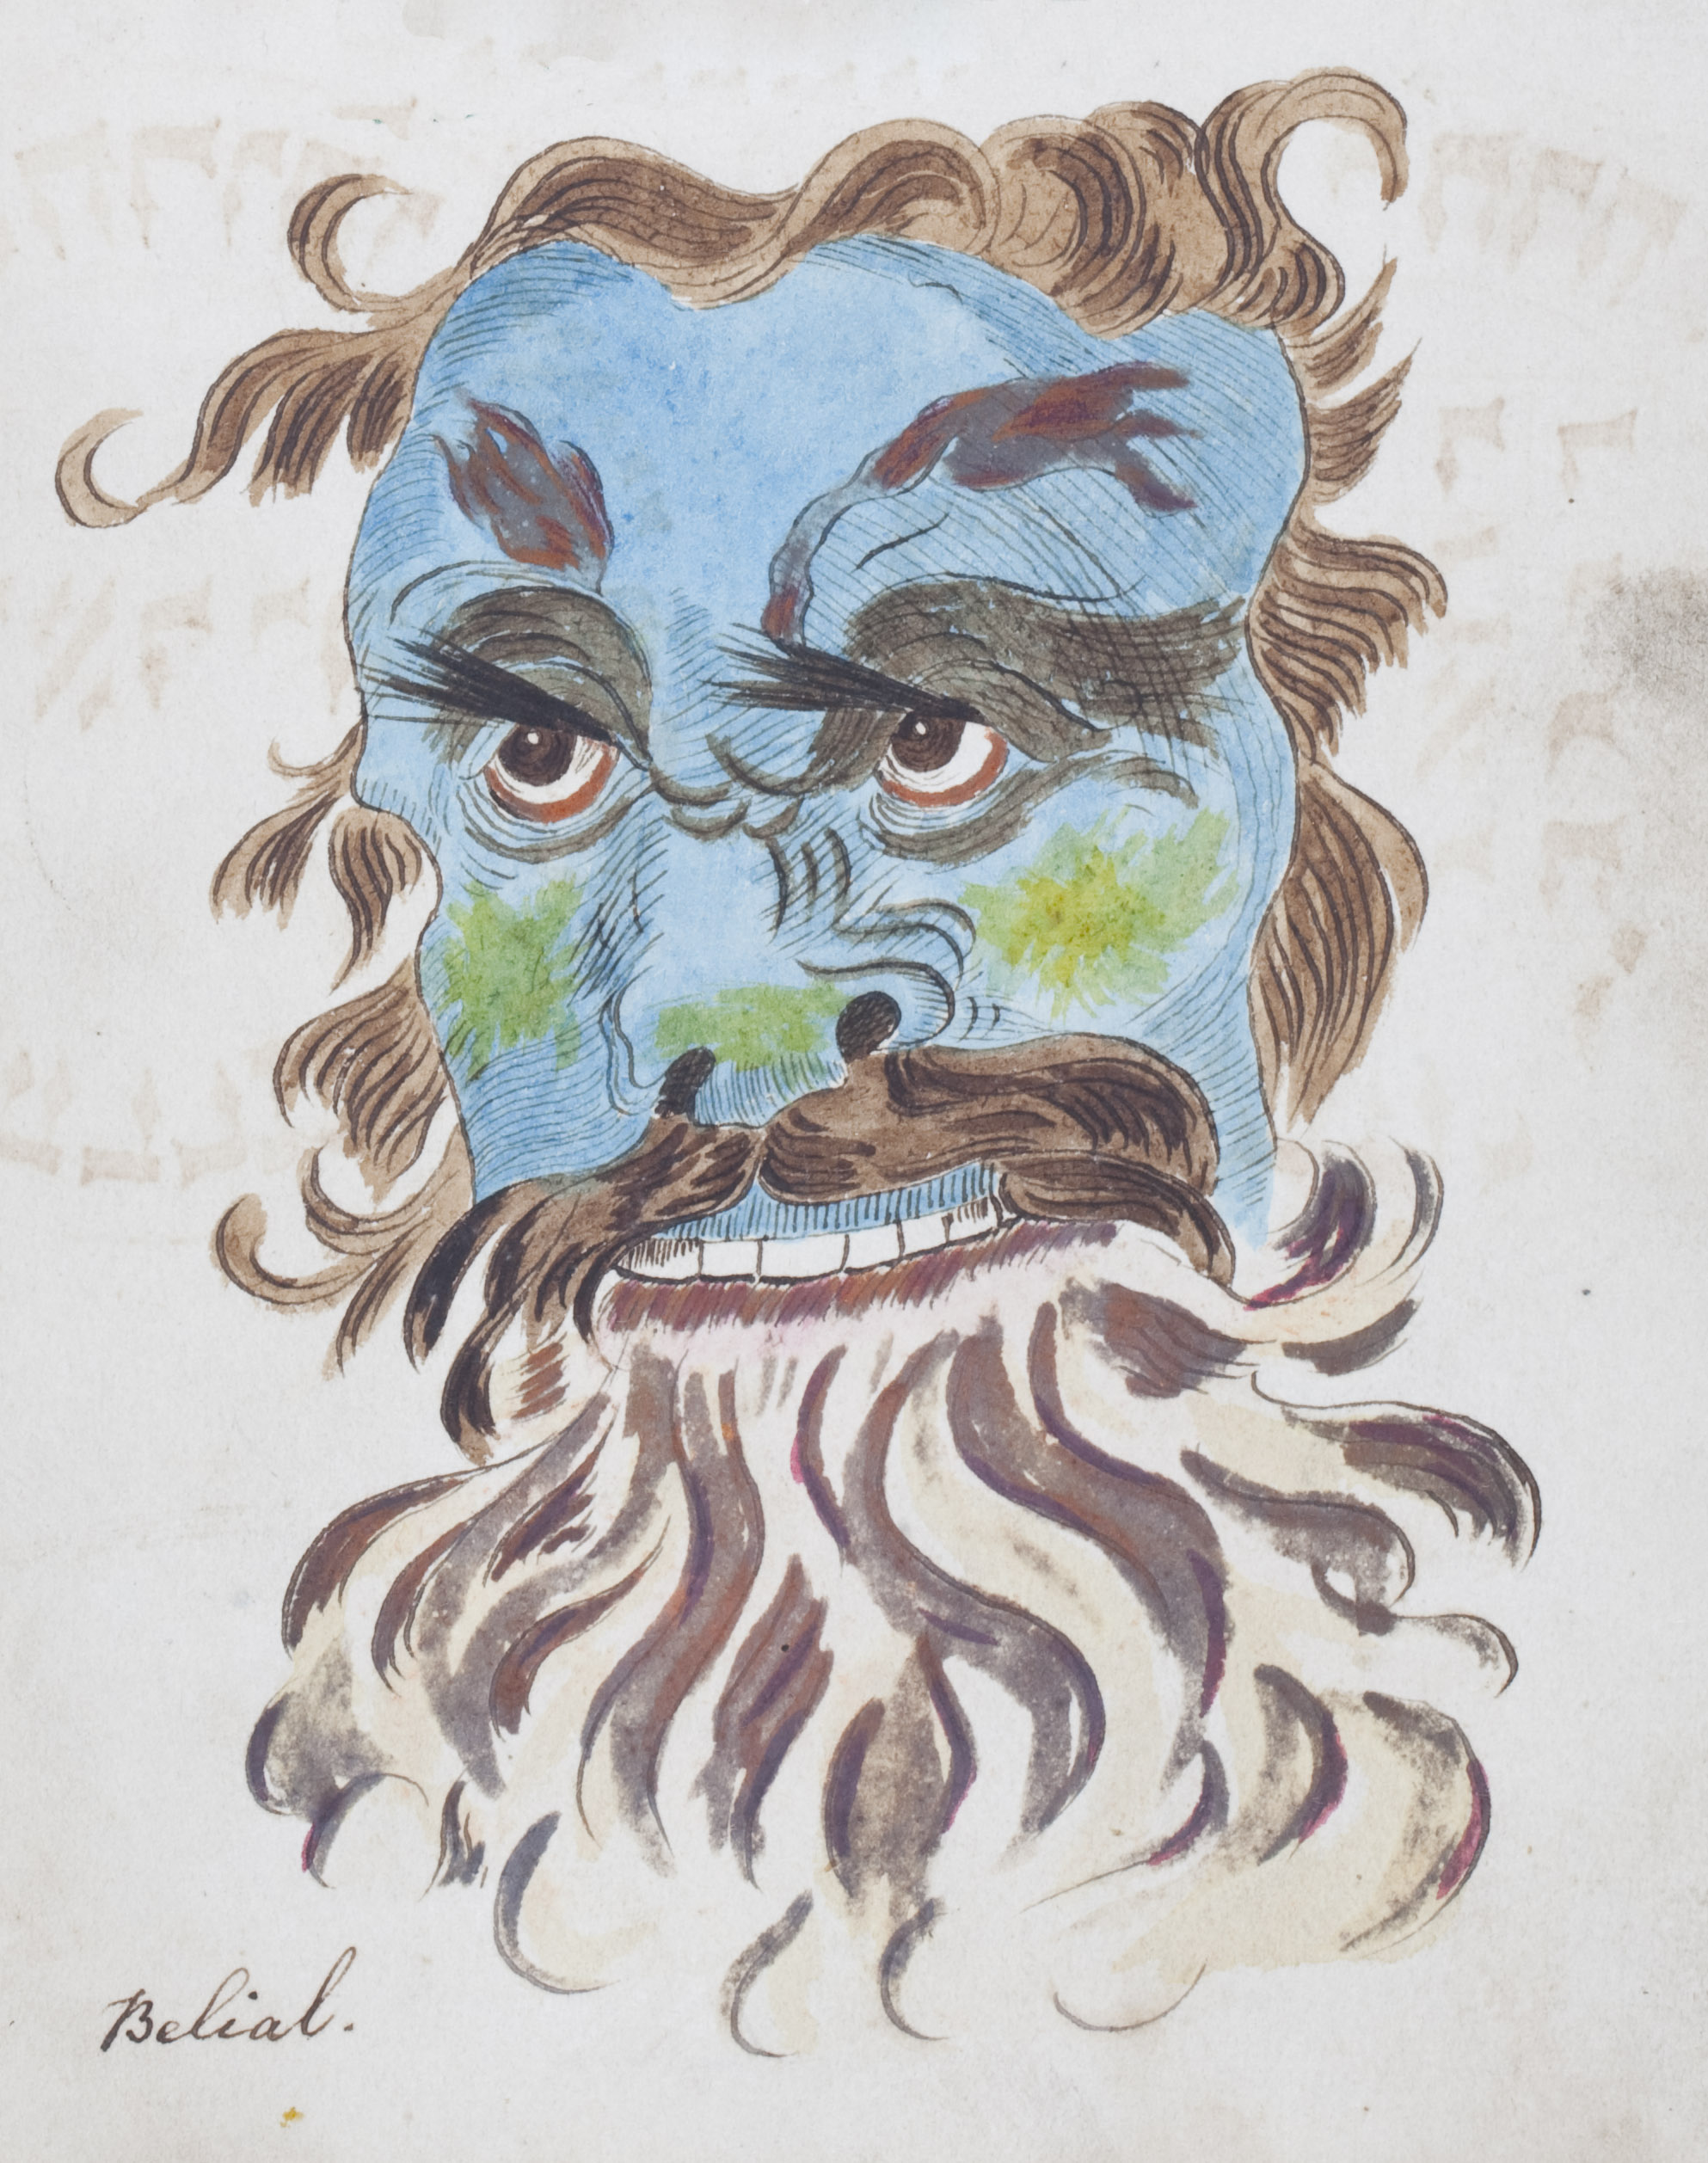 BARRETT, Francis (fl.1780-1814). The Magus, or Celestial Intelligencer; being A Complete System of Occult Philosophy, a manuscript copy of the first edition (published by Lackington, Allen and Co, London, 1801), including 14 drawings (10 coloured) of heads of demons etc, and a number of other figures, concluding with a related text, 'Illustrations of the Black Art', 413 pages, 4to (f.1 reattached), roan-backed boards (worn).